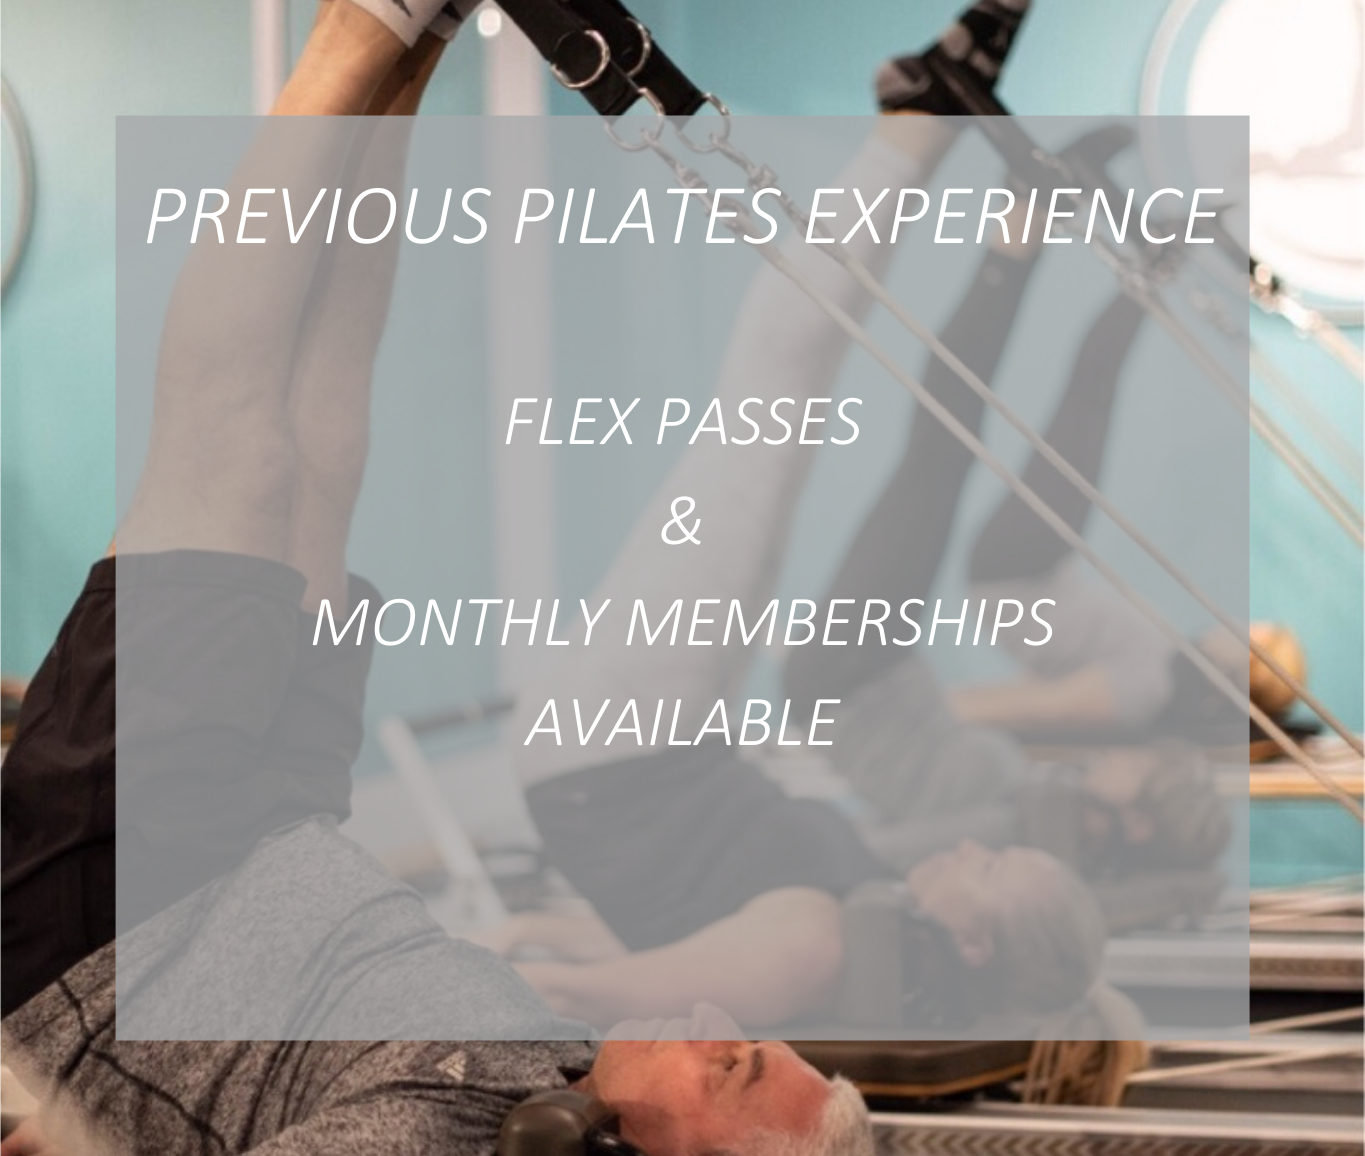 Previous Pilates Experience for Website